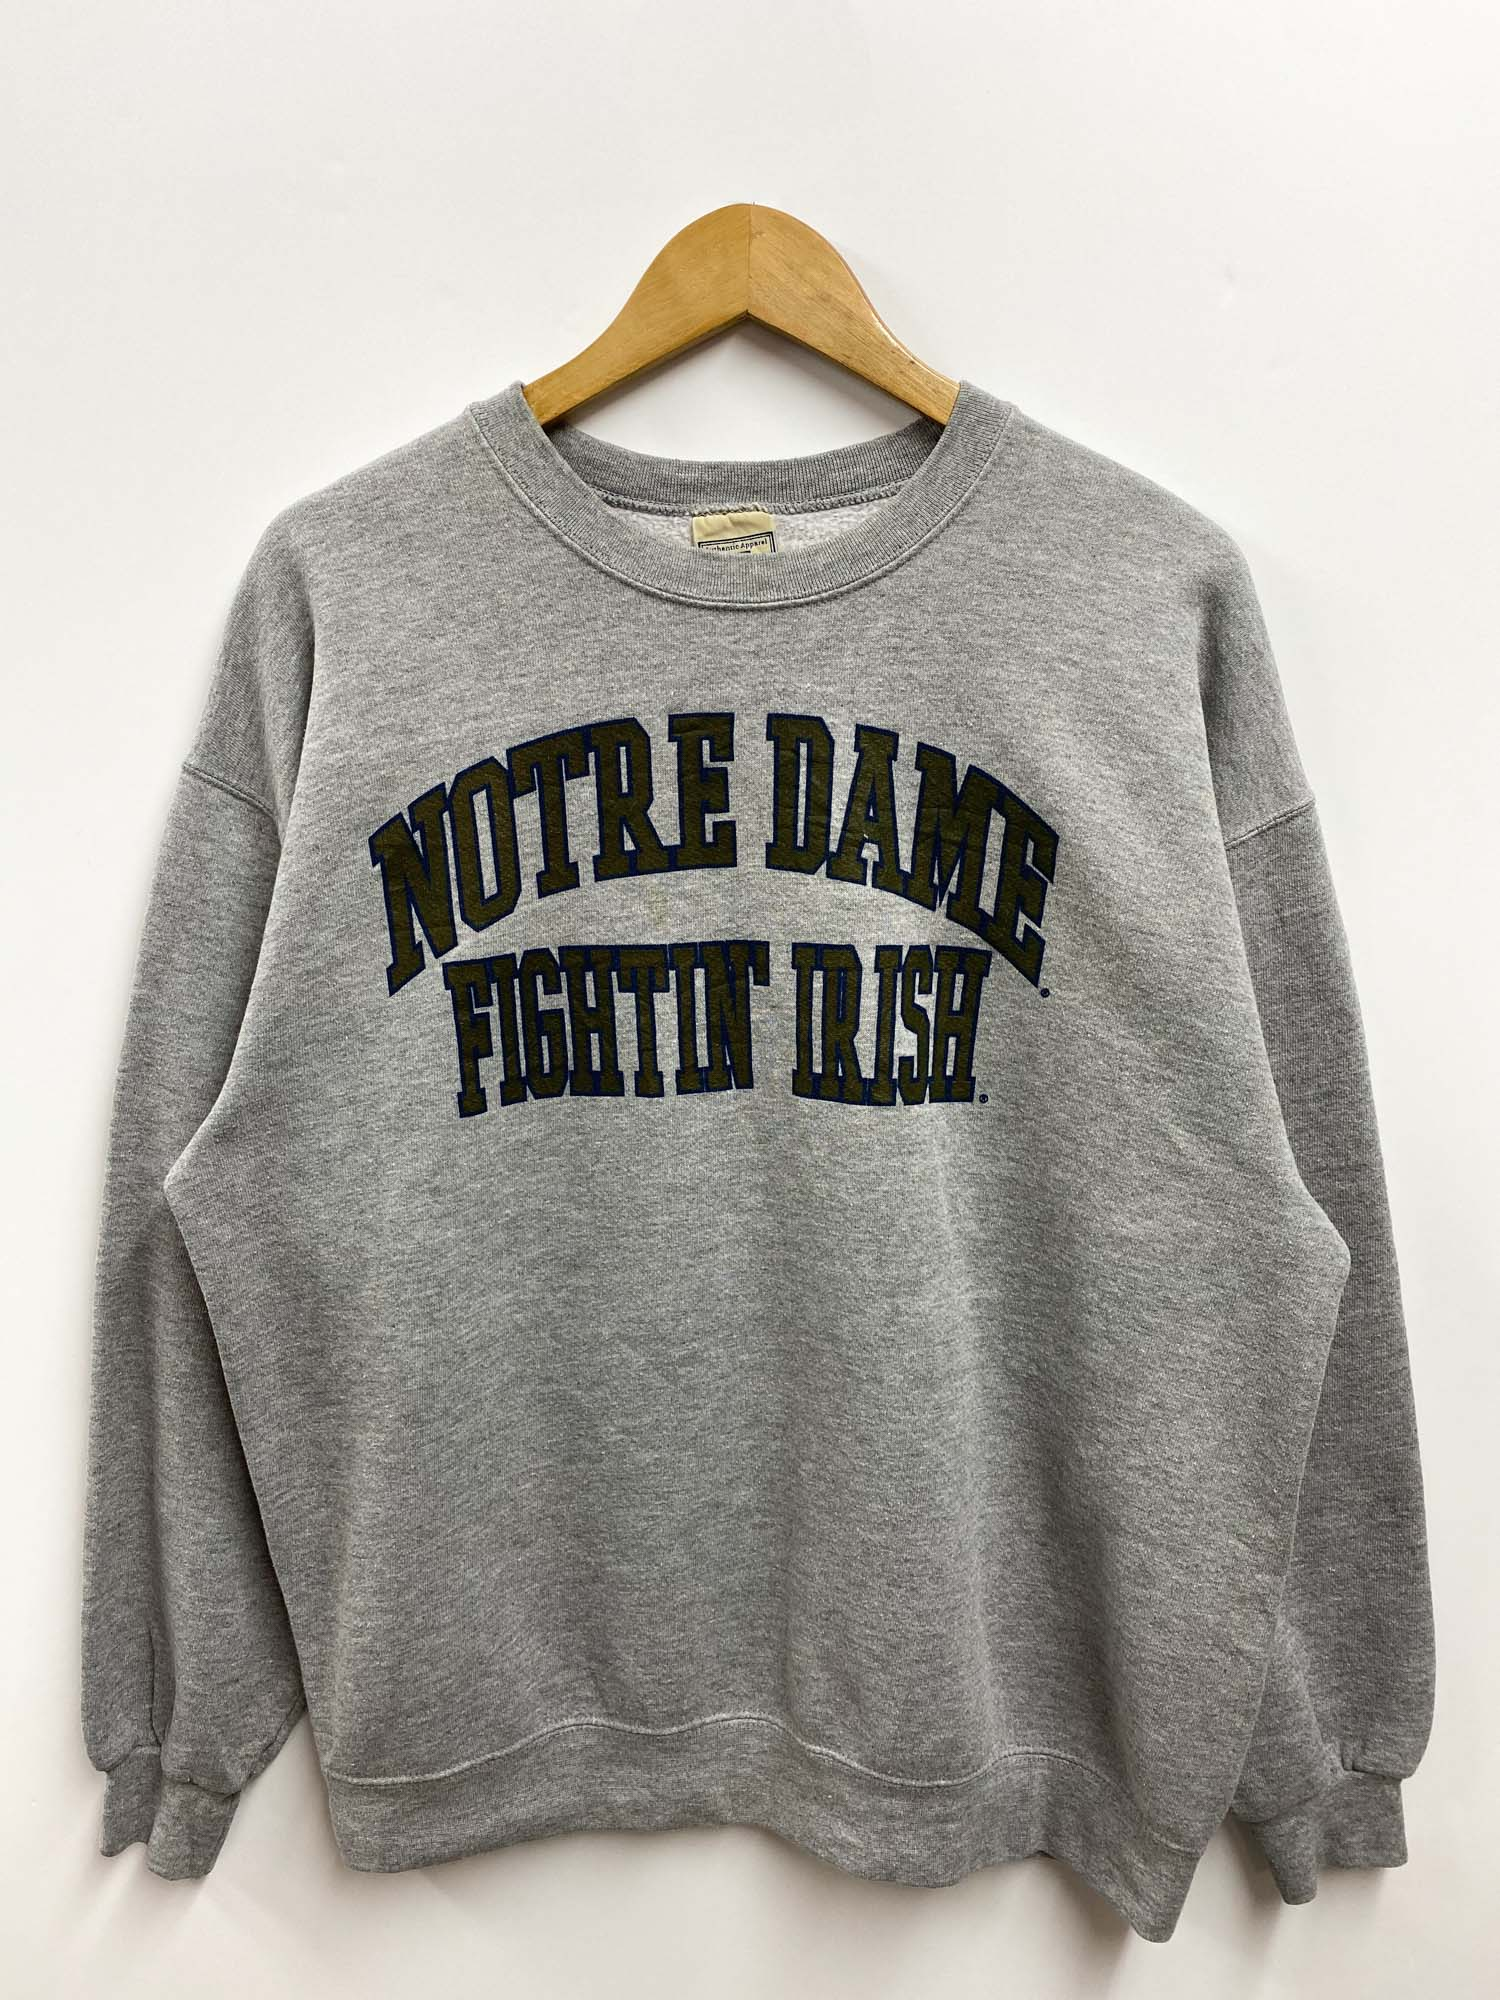 Vintage LEE Notre DAME FIGHTIN' IRISH CREWNECK